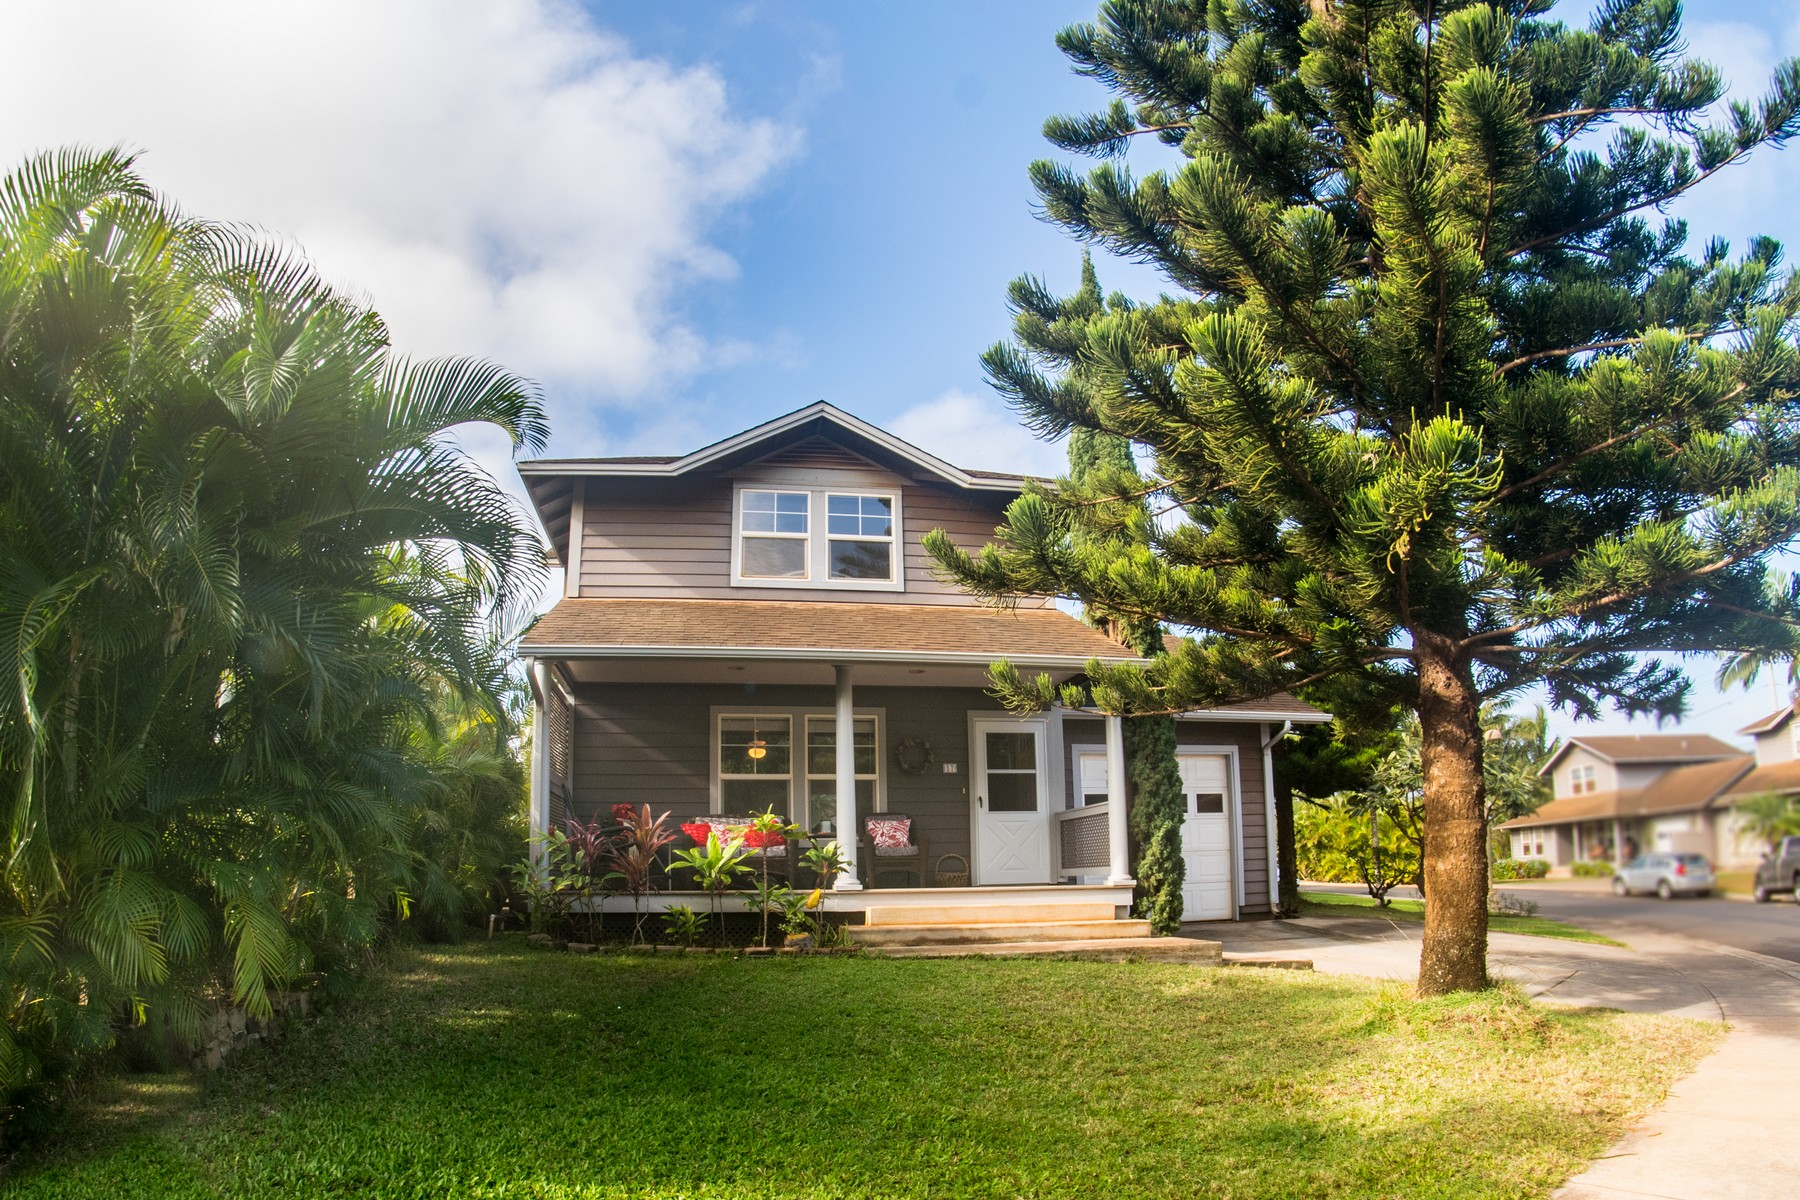 Single Family Home for Sale at LOCATION! Charming 3 Bed, 2.5 Bath Single Family Home 17 Hoaka Place Lahaina, Hawaii 96761 United States